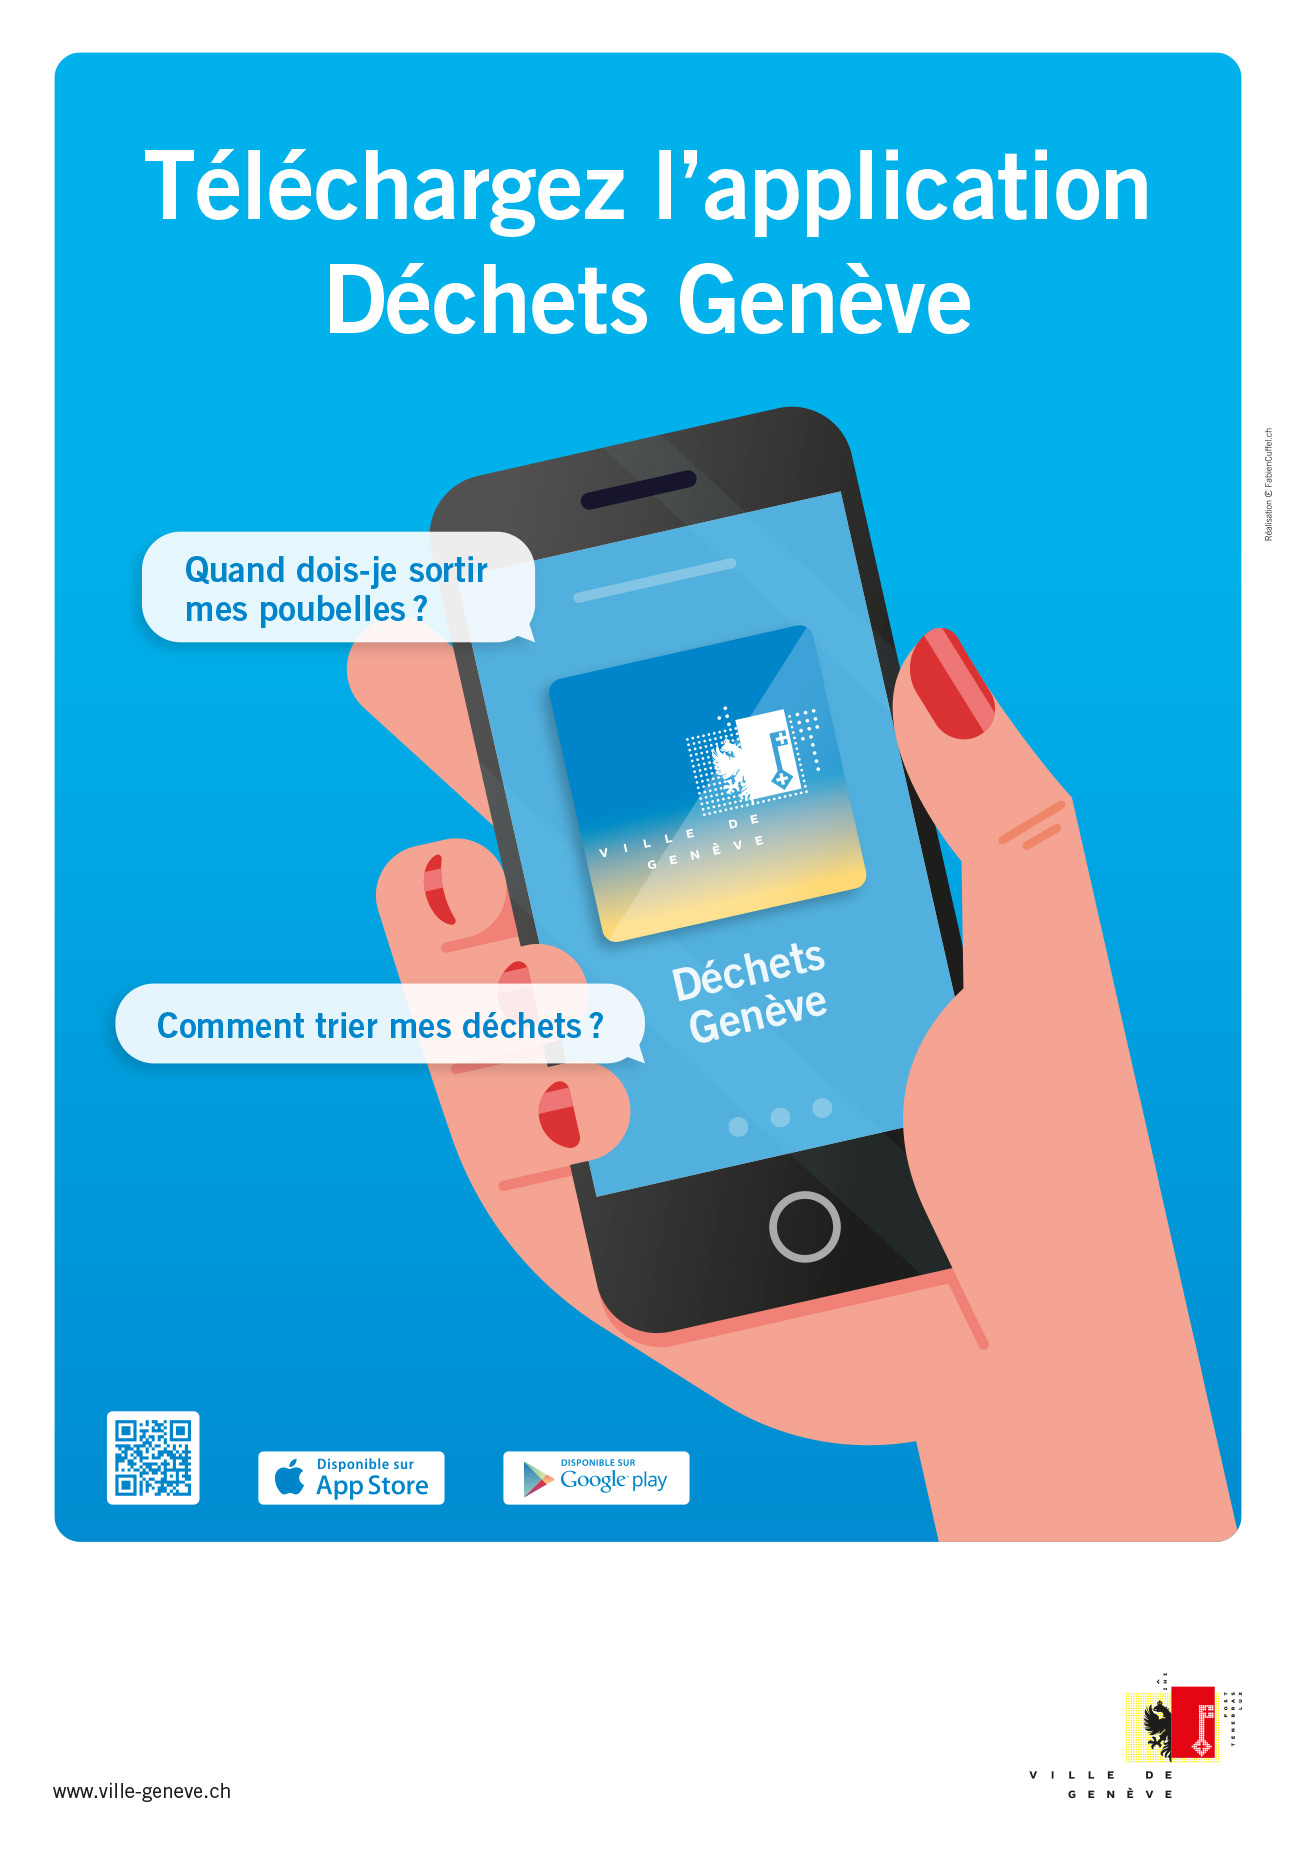 Fabiencuffel_Affiche_F4_VilleGeneve_Application_Dechets